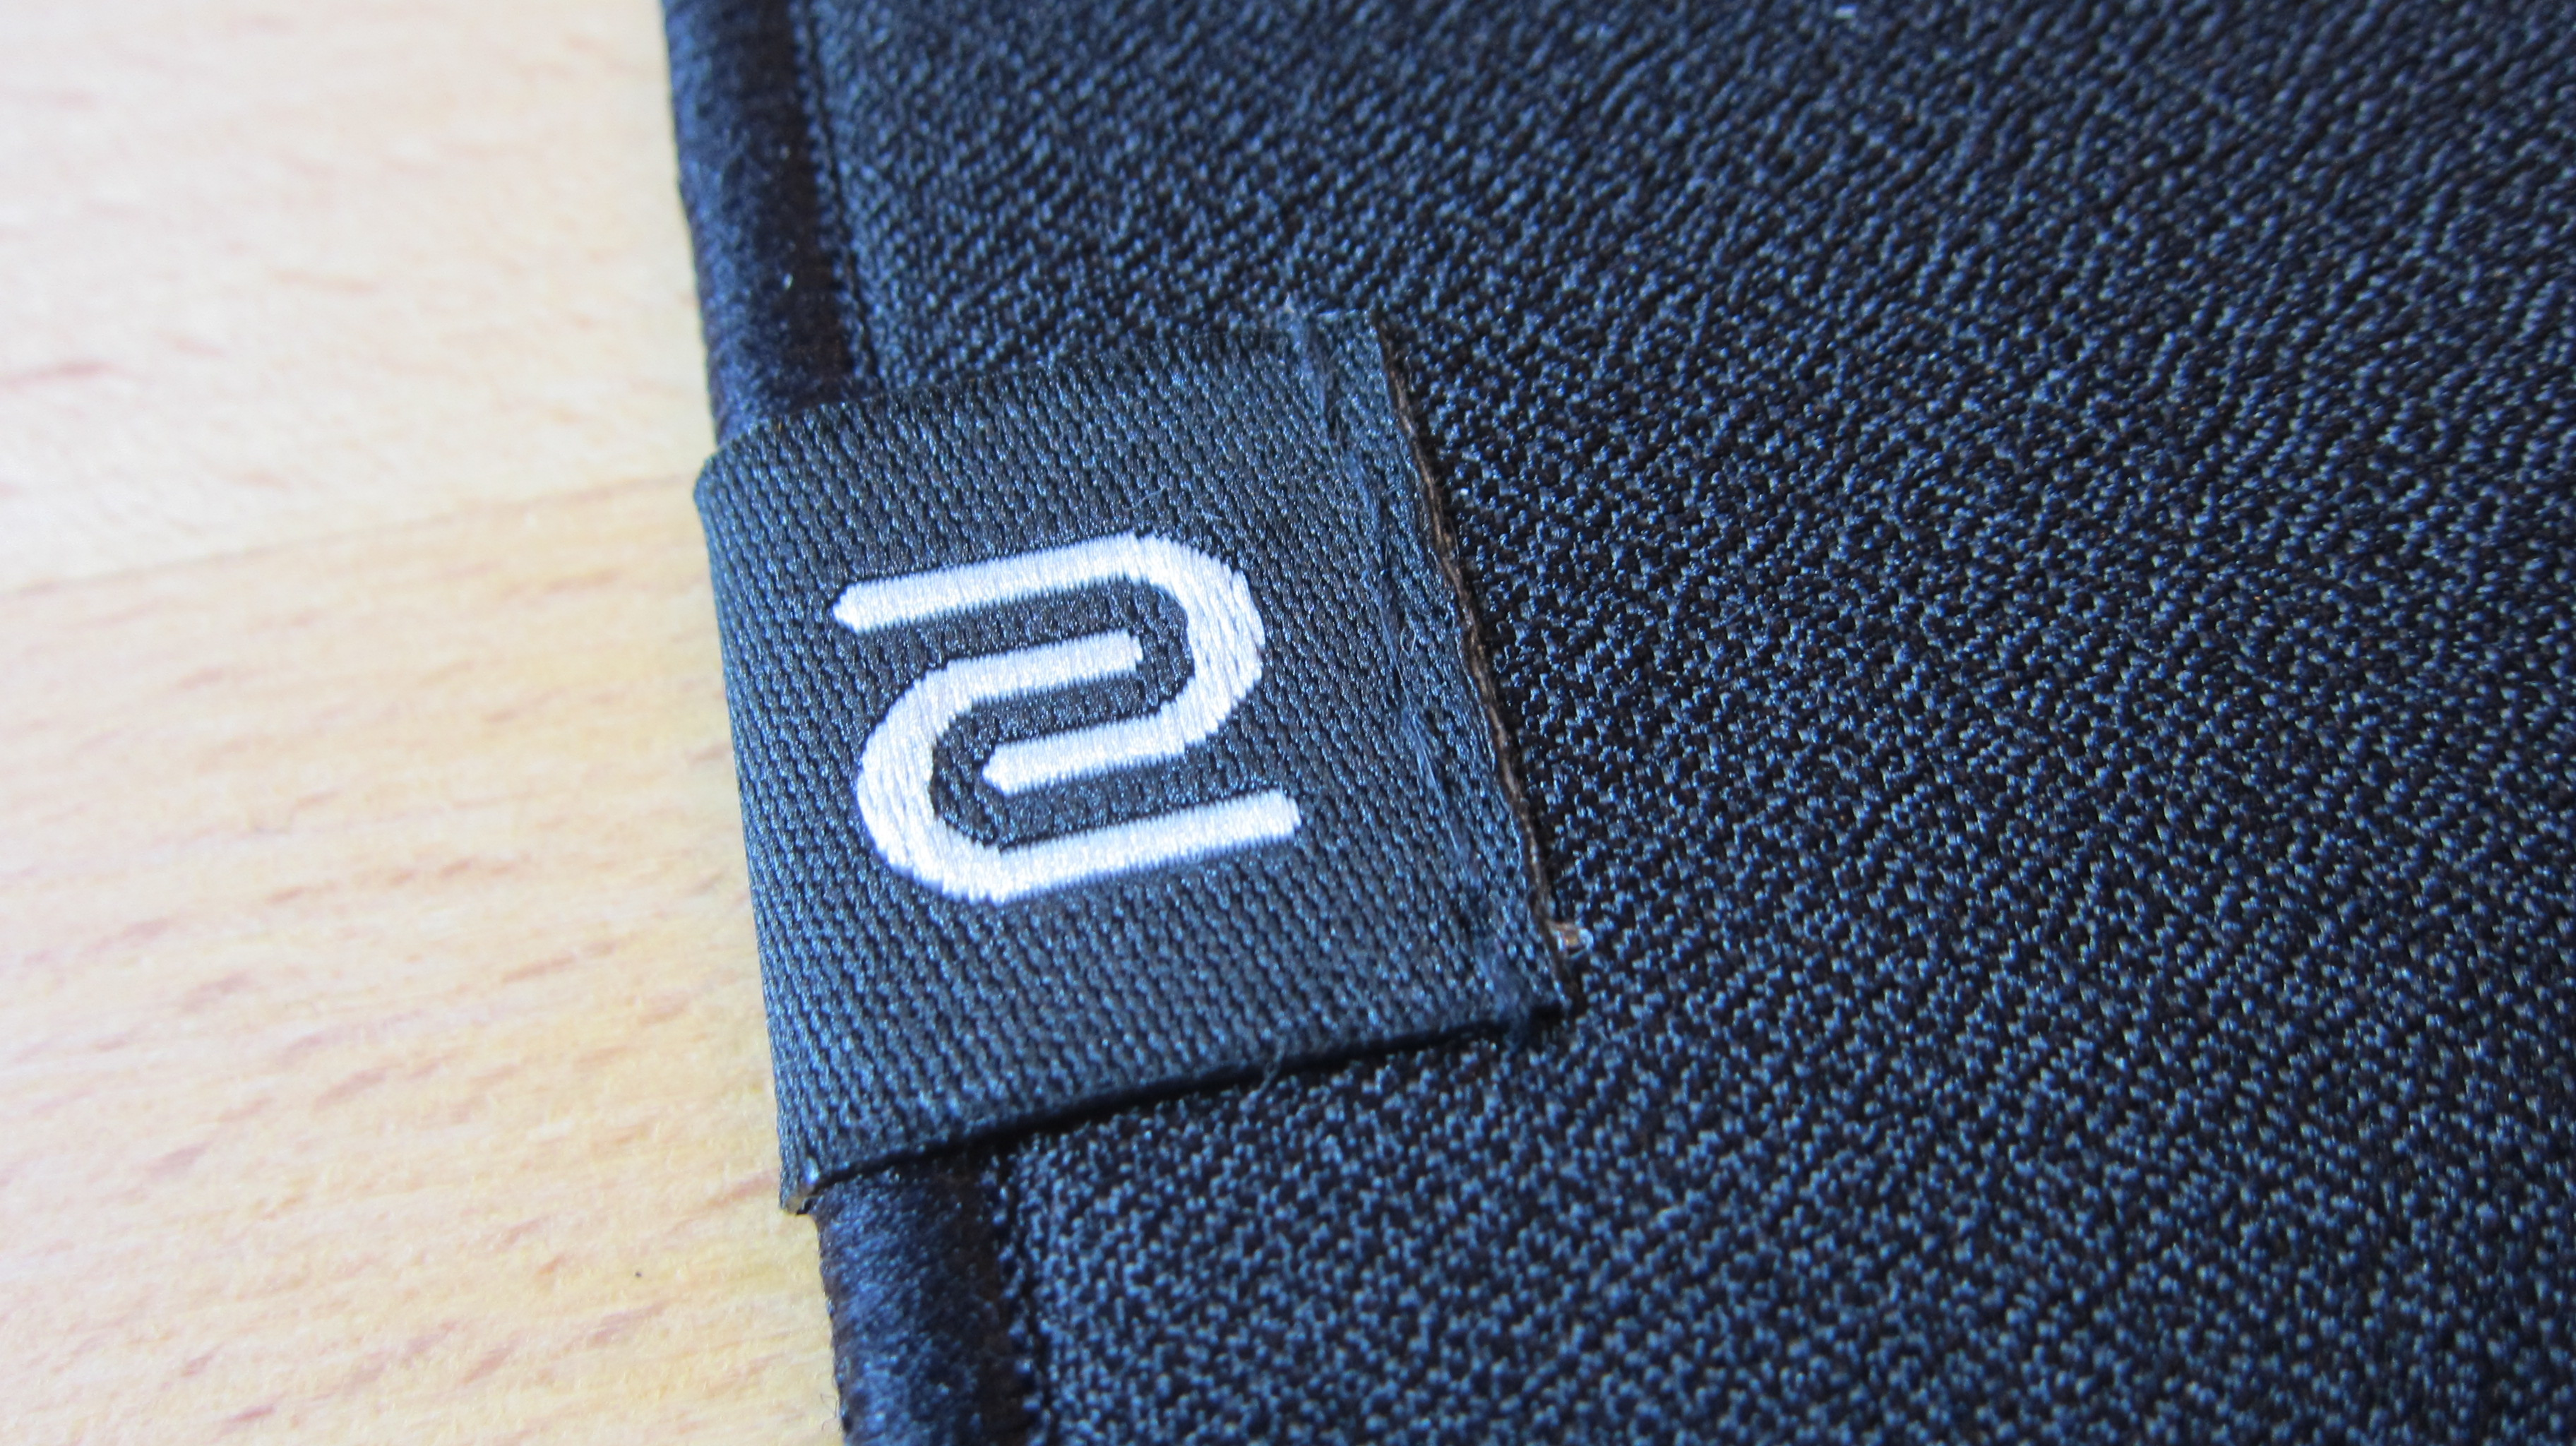 Close up of Zowie G-TF X mouse pad surface